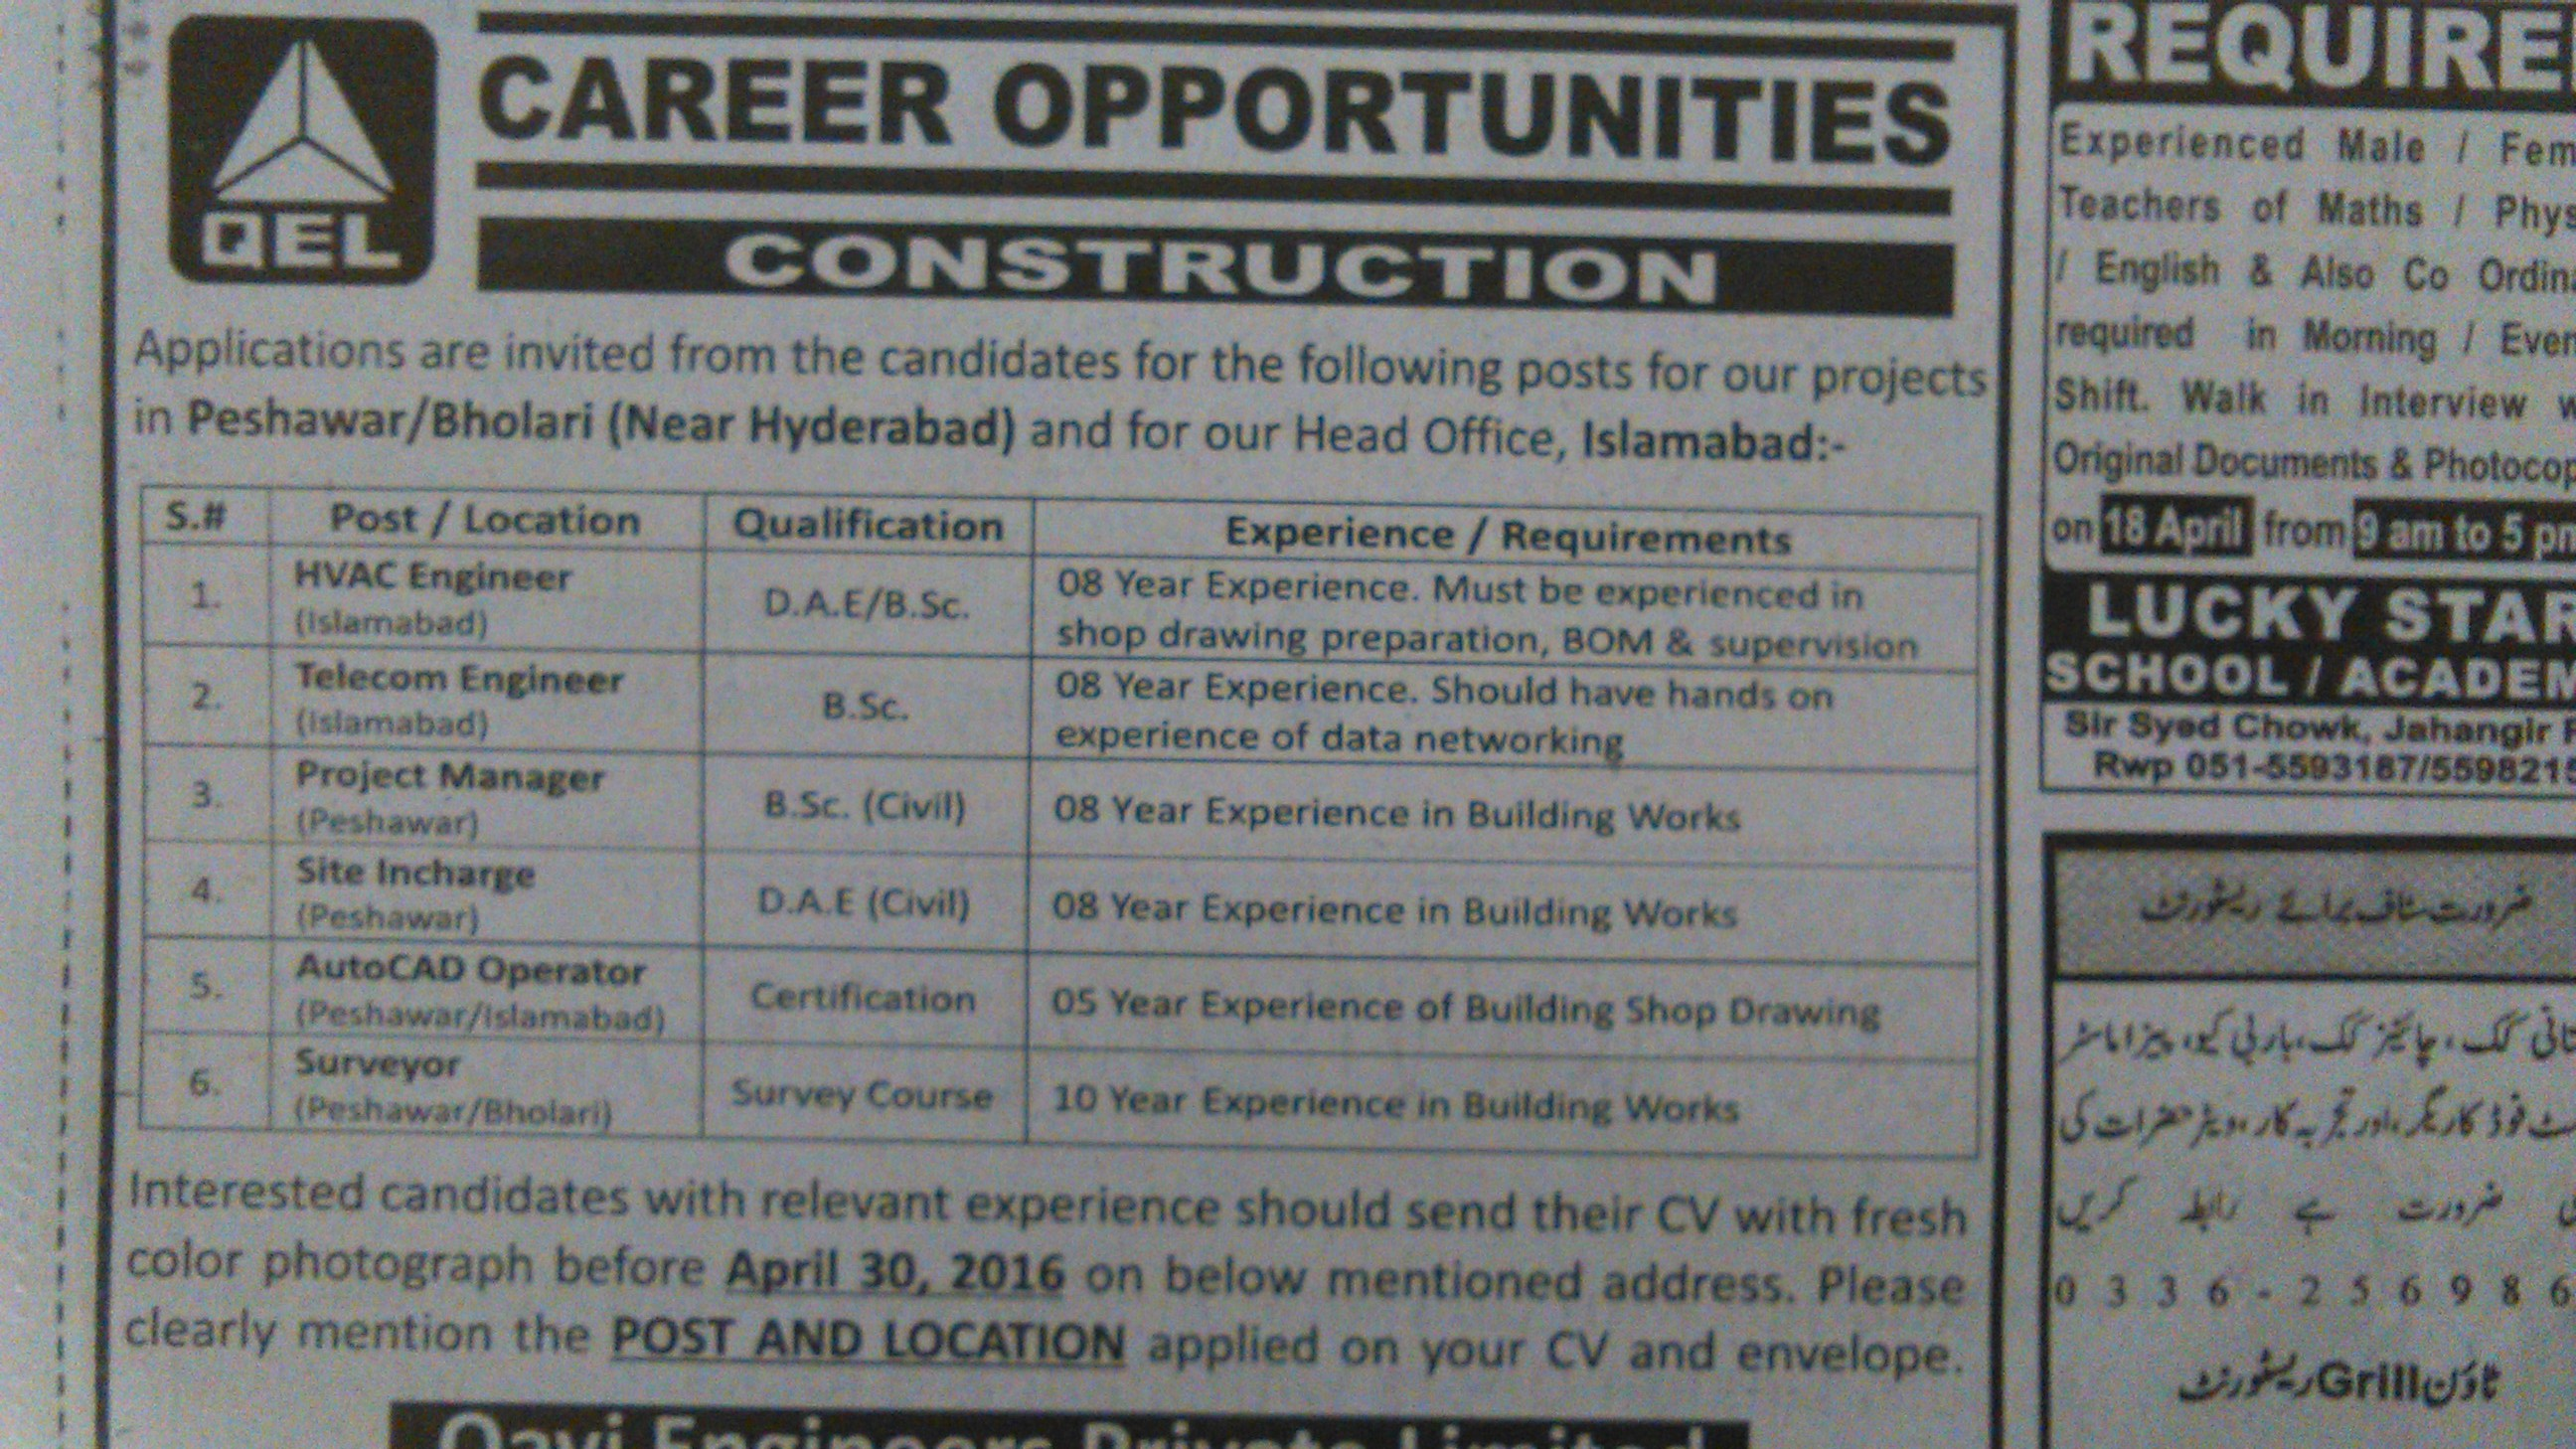 Career Opportunity in Construction